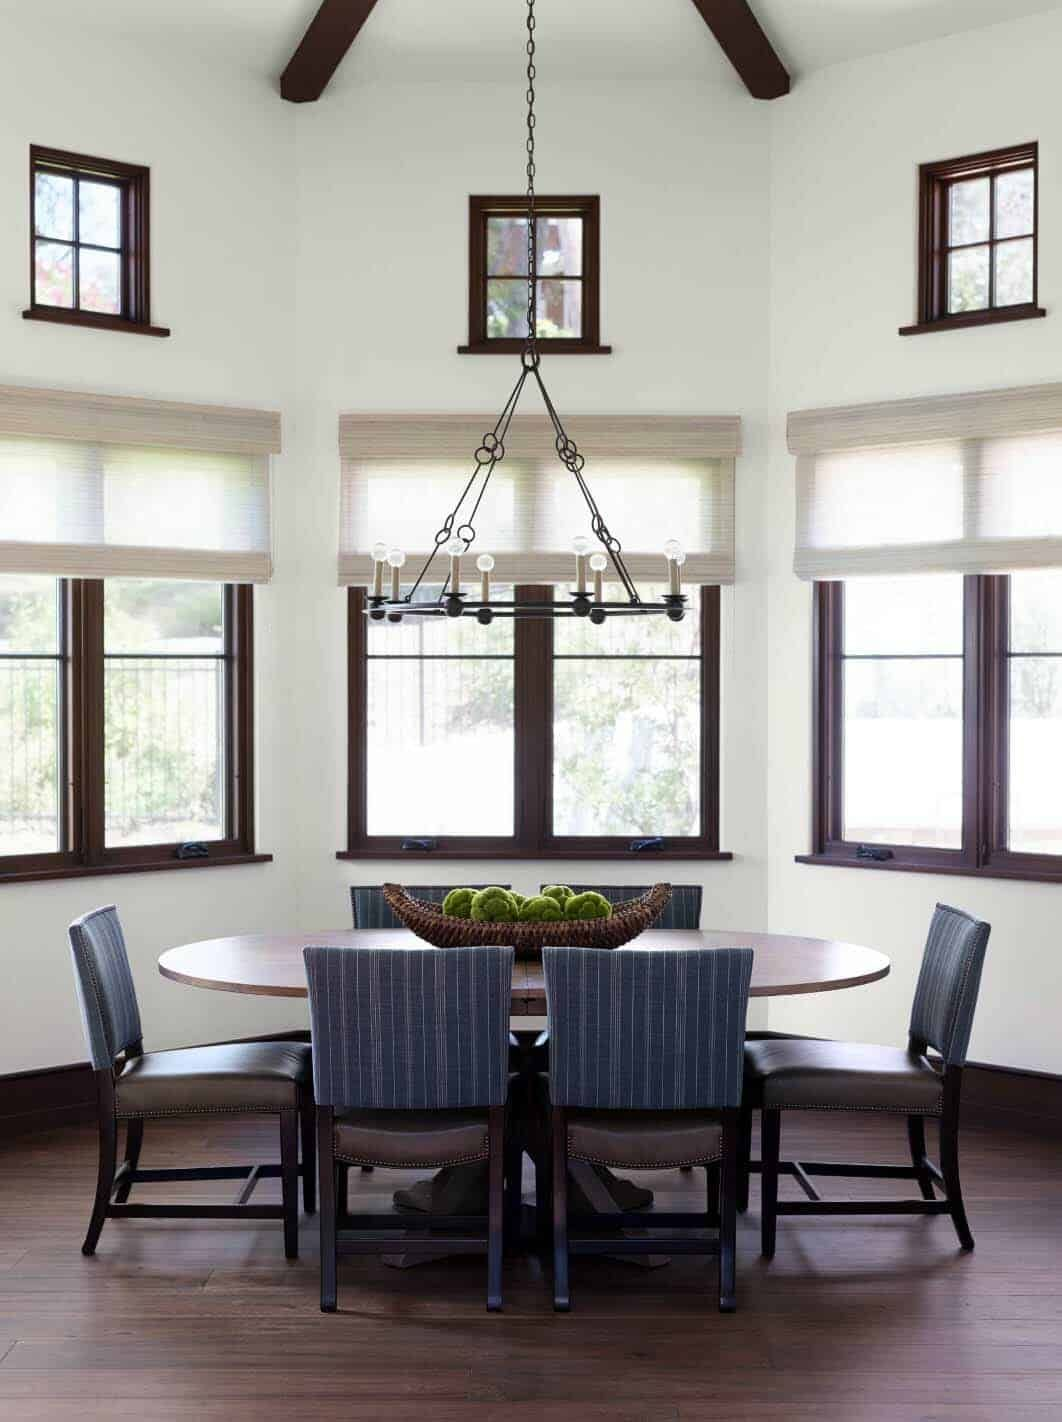 The dining room is framed by windows and has a circular wooden table with leather chairs all around